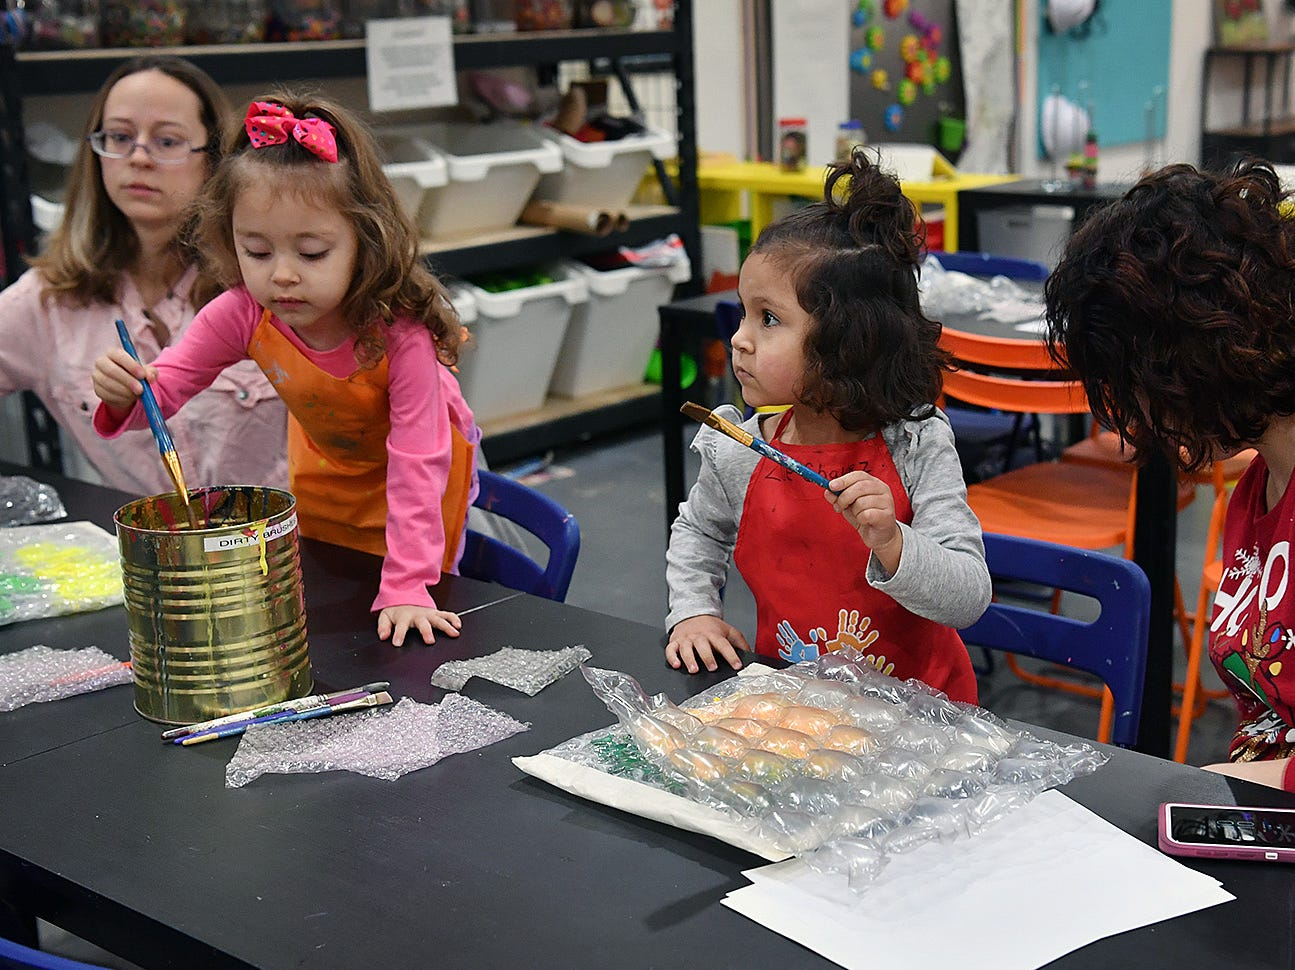 Dessirae Perez, left, her daughter, Aurora, Zoe Chavez and her mother, Tiffany Chavez, participate in a bubblewrap and paint art experience at CrashWorks STEAM Studio & Makerspace Wednesday.